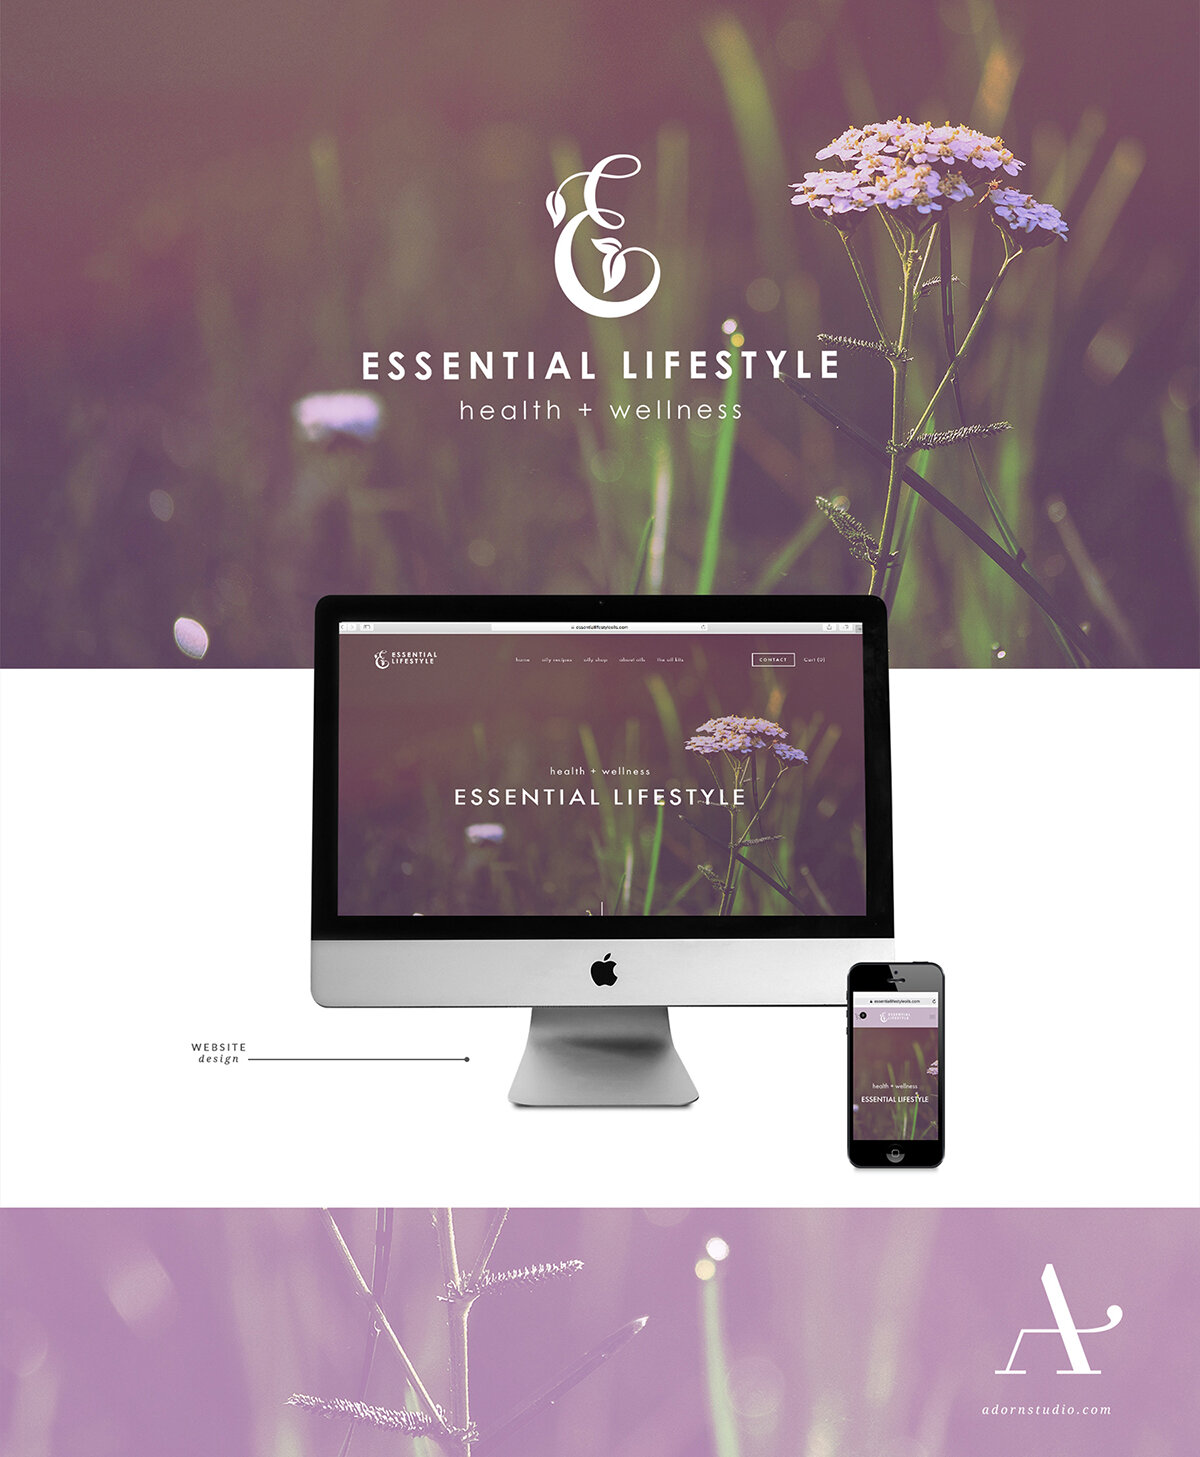 Adorn Studio | Innovative and Minimalist Graphic Design | Essential Lifestyle Branding | Young Living Essential Oils